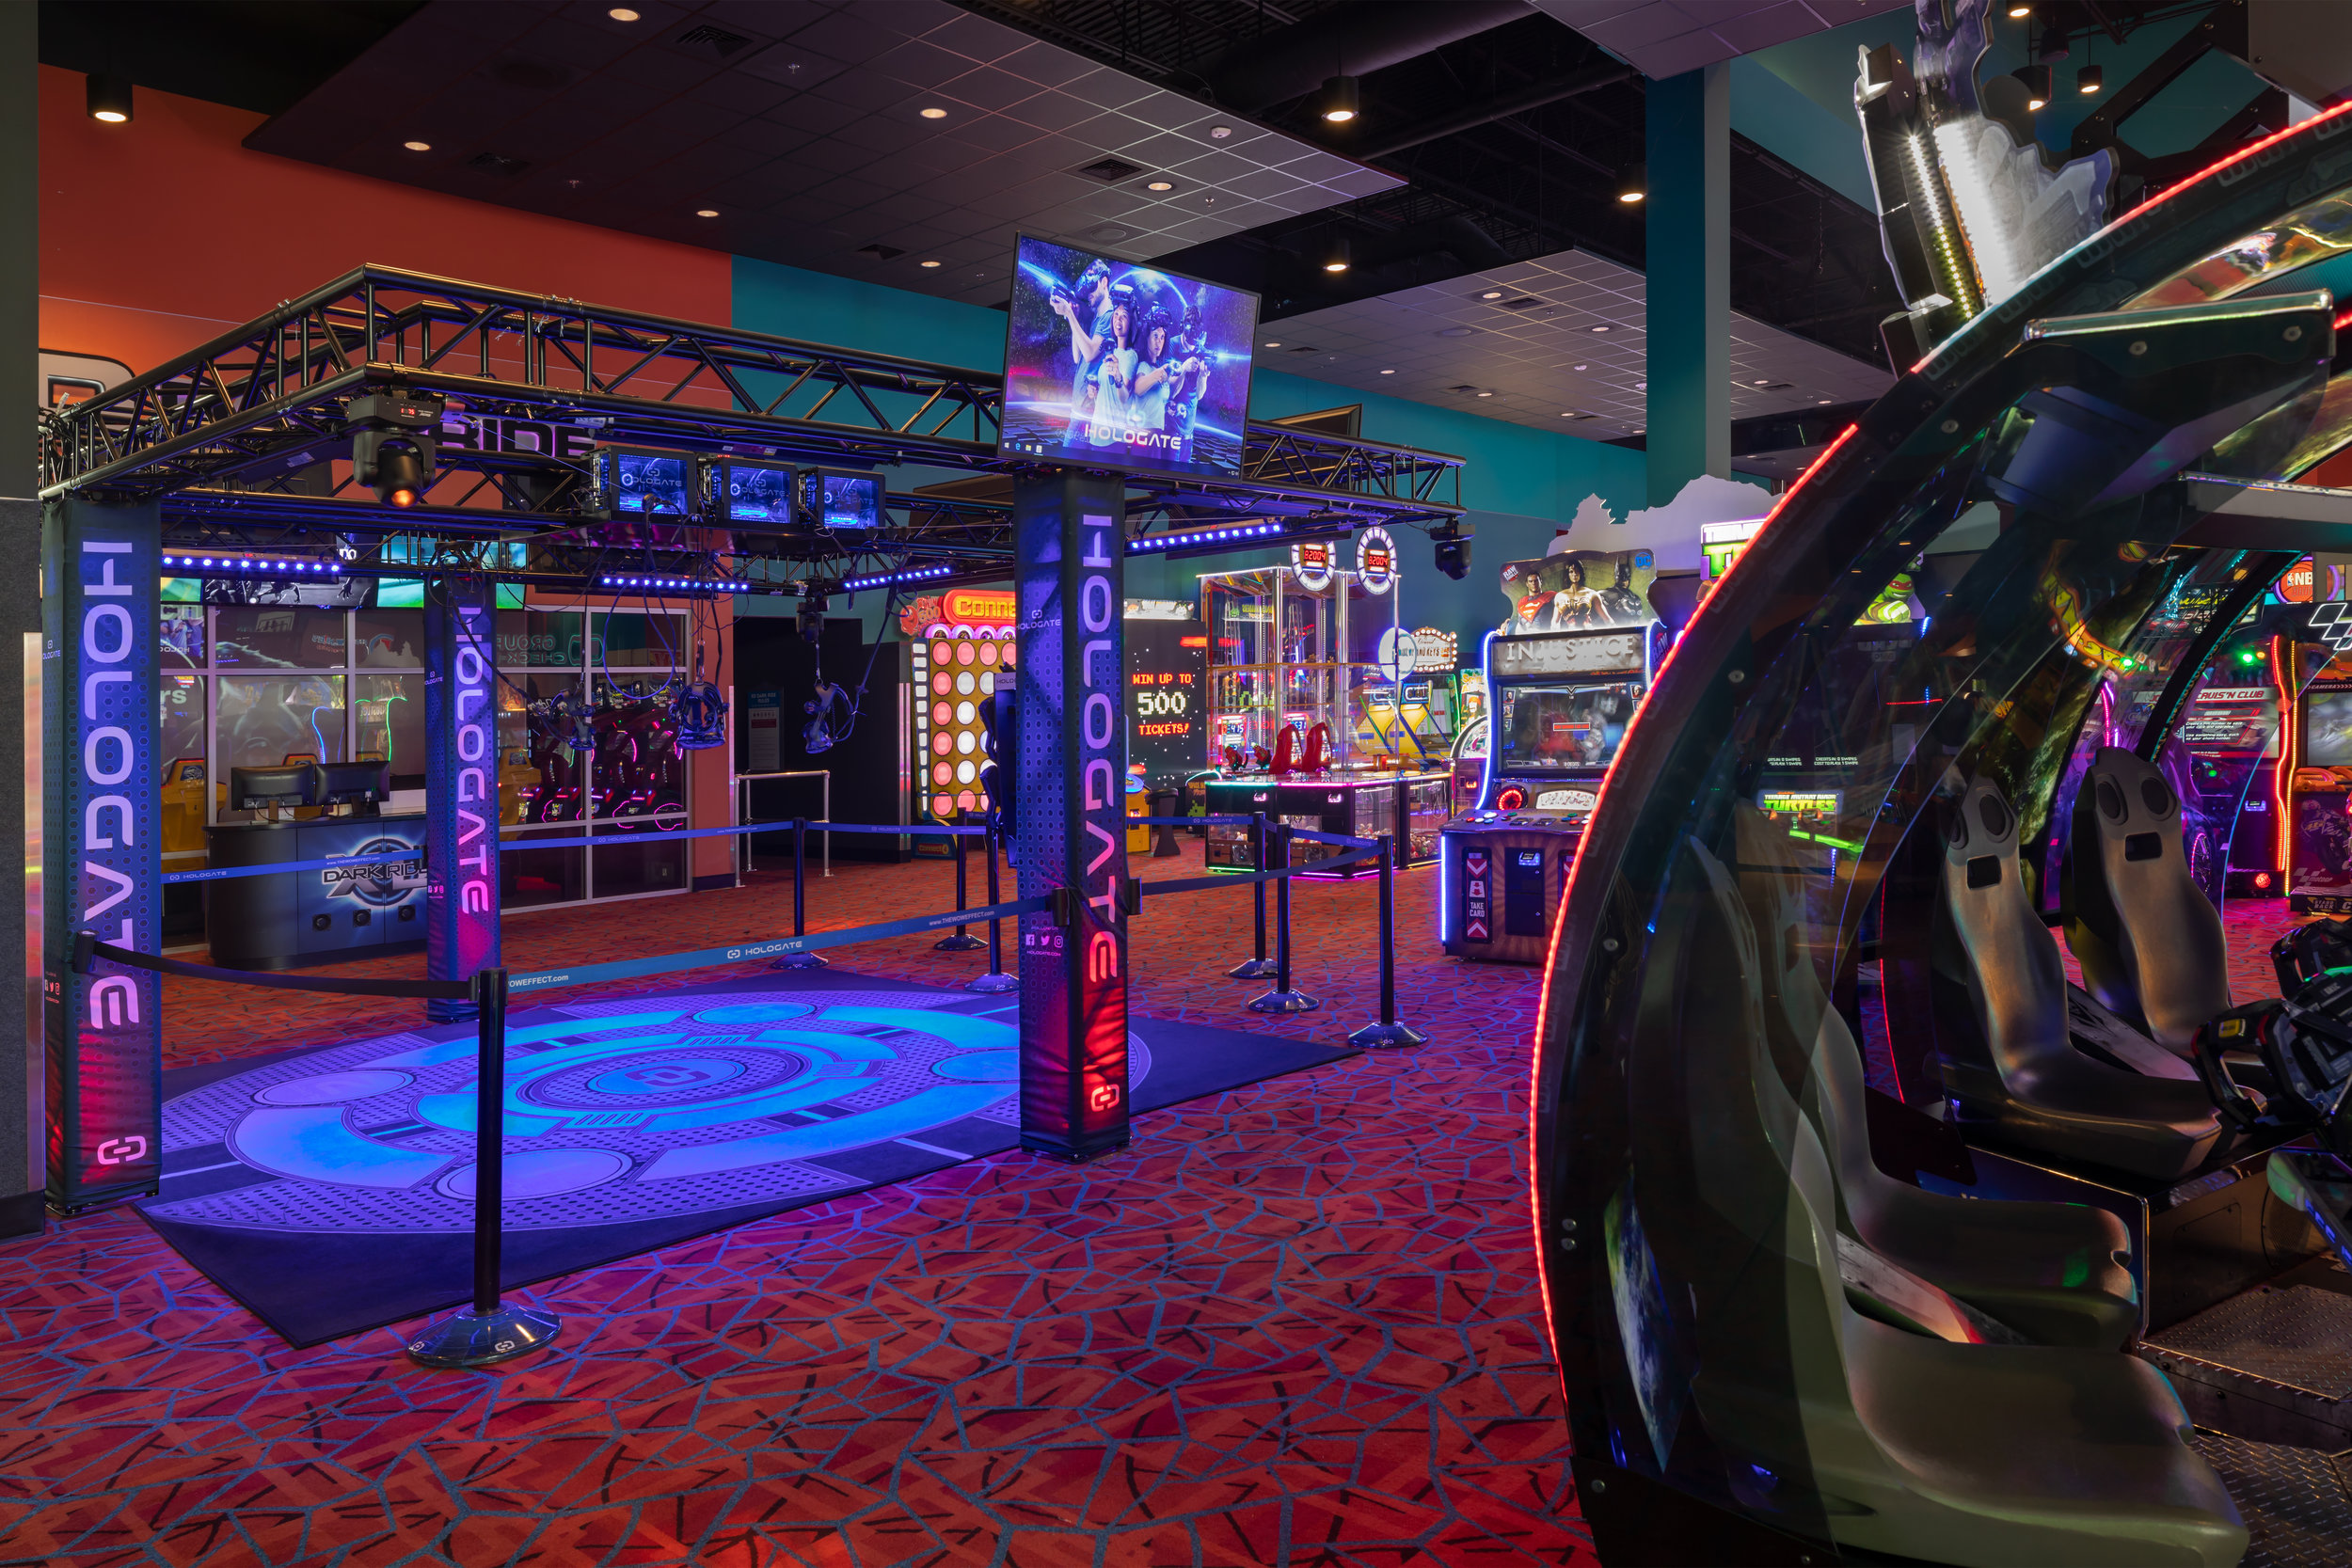 ADW-Entertainment-Frankie's-Fun-Park-Huntersville-NC-Interior-Arcade VR.jpg